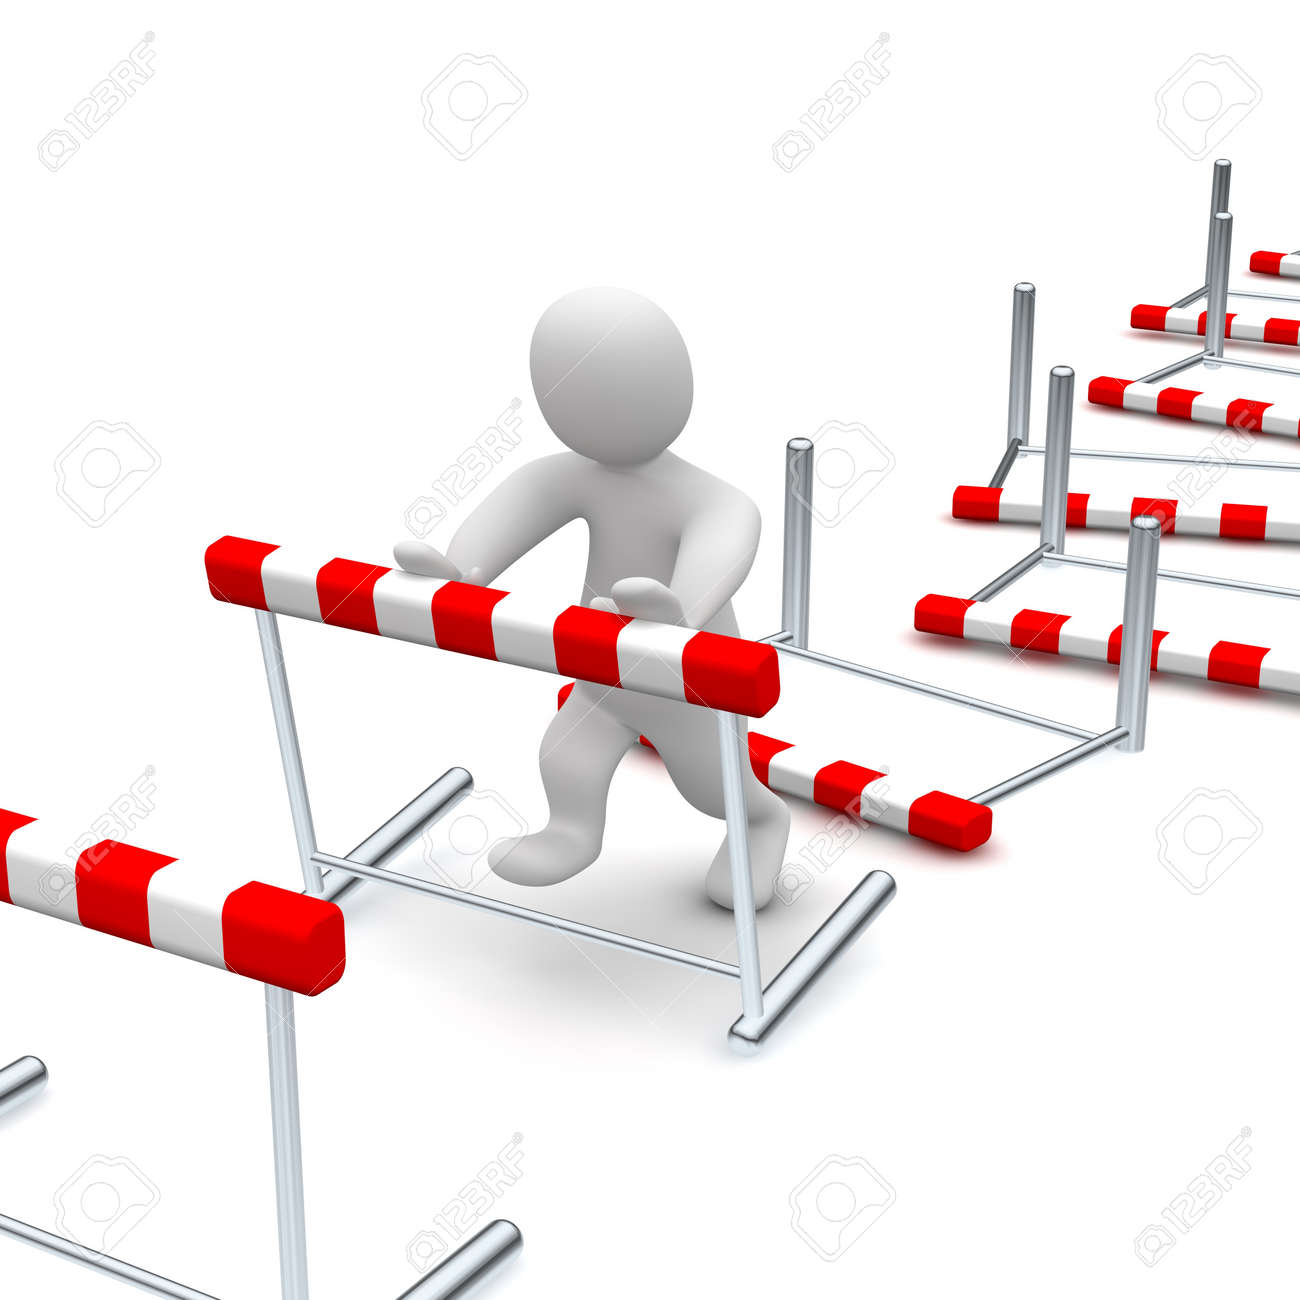 Man overcome or knocking down hurdles. 3d rendered illustration. Stock Photo - 6981476